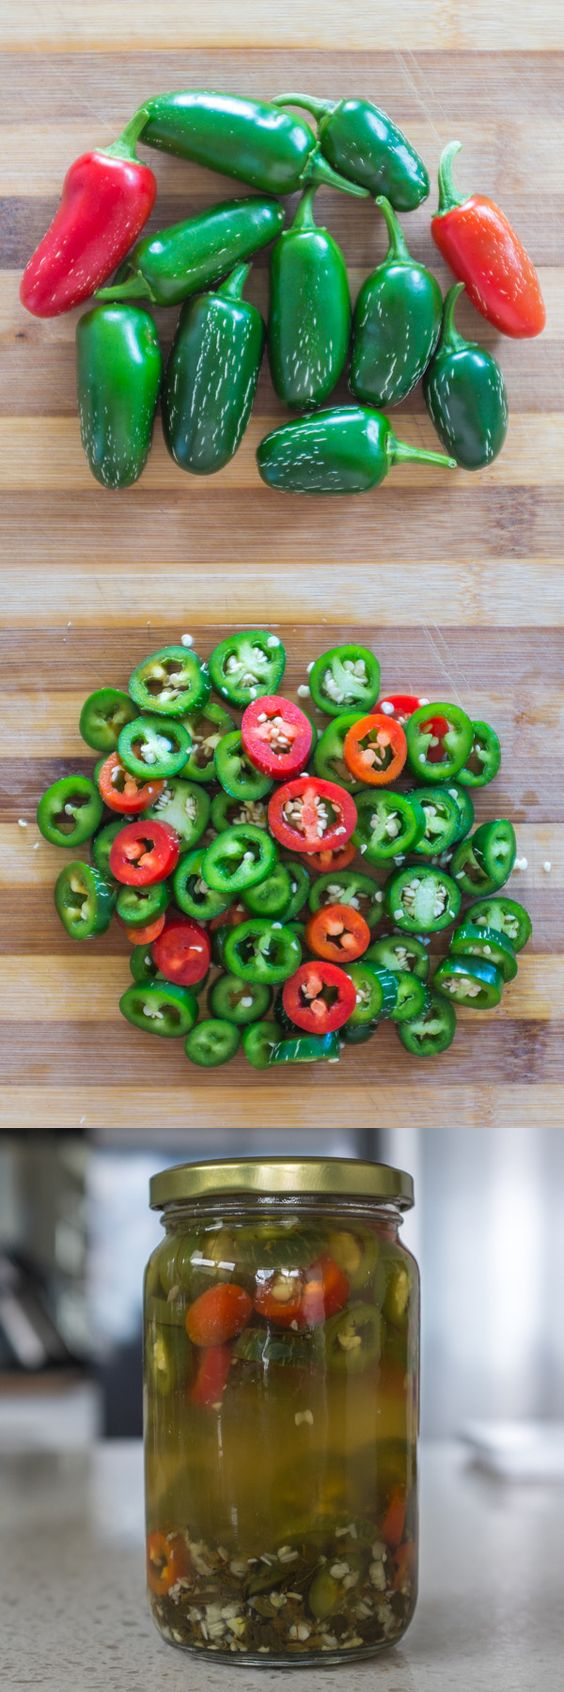 A quick & simple recipe for Mexican-style pickled jalapeños.